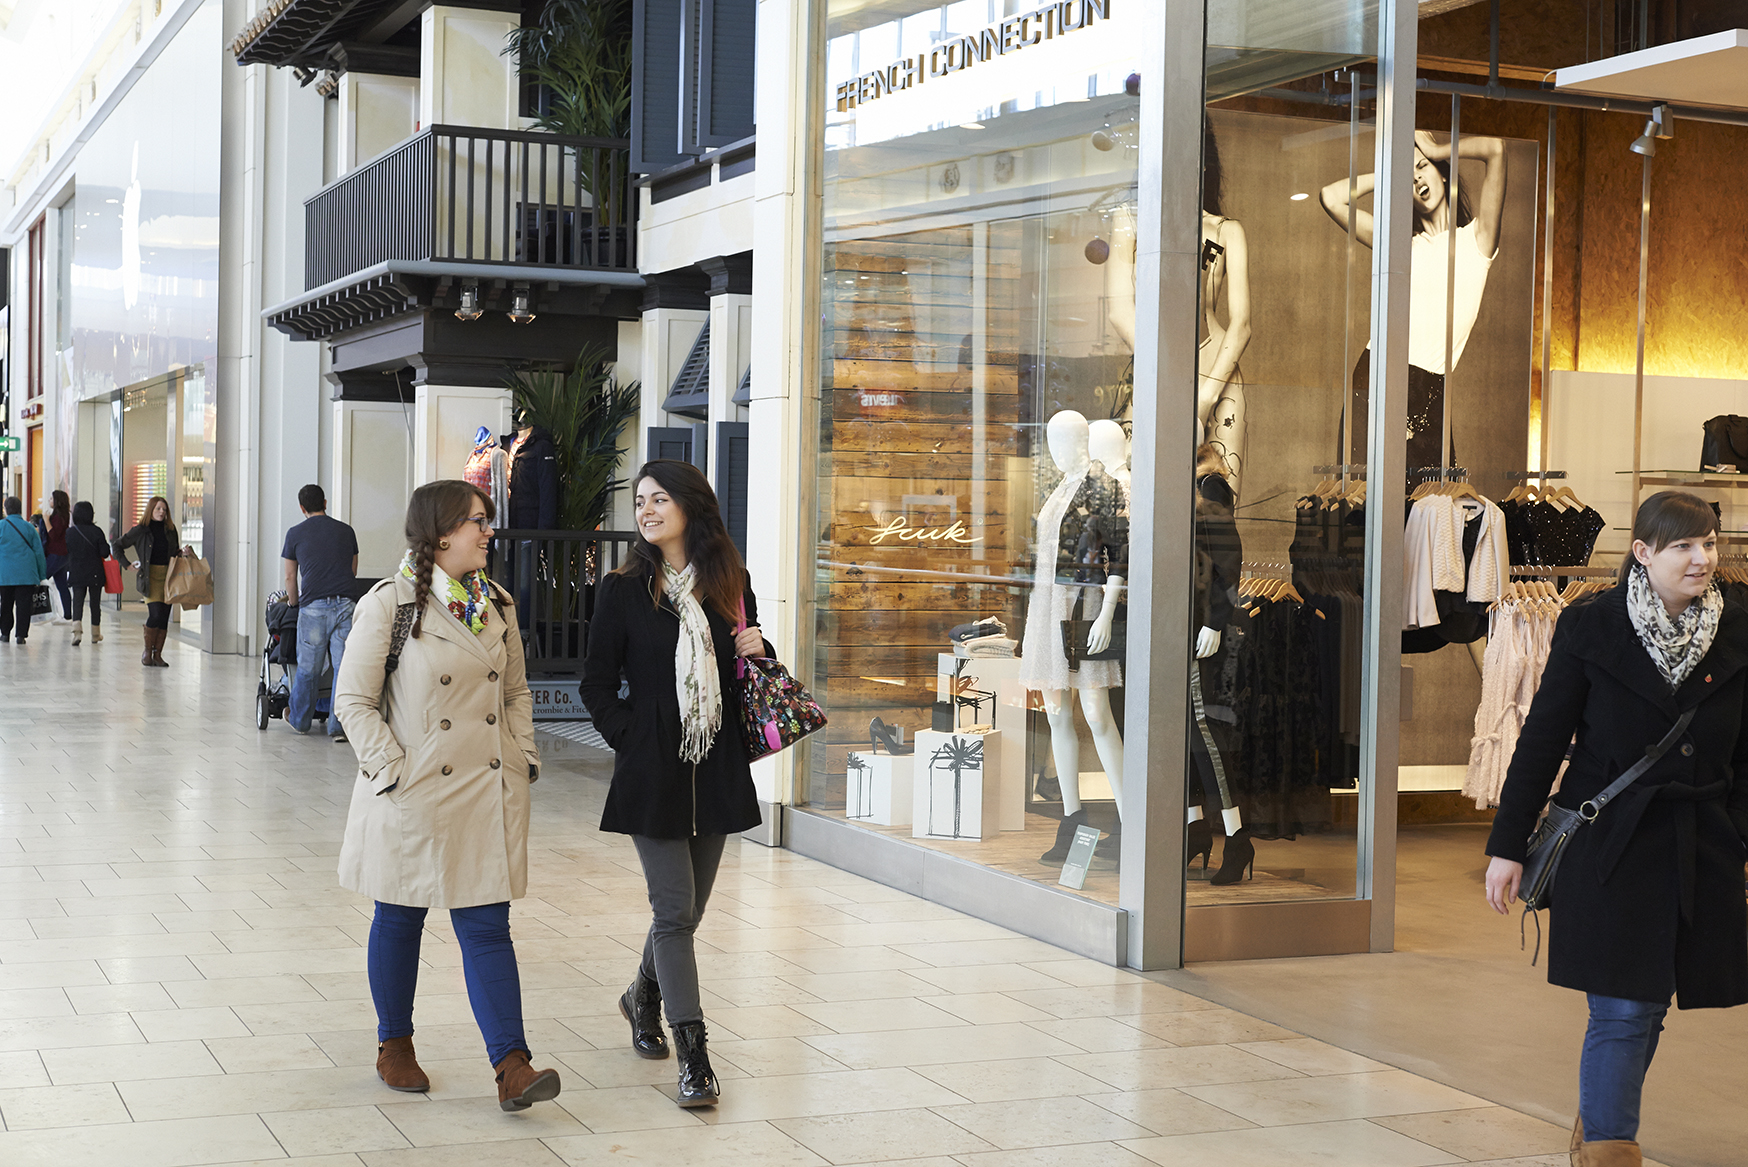 Norwich has hundreds of high street and independent shops to browse